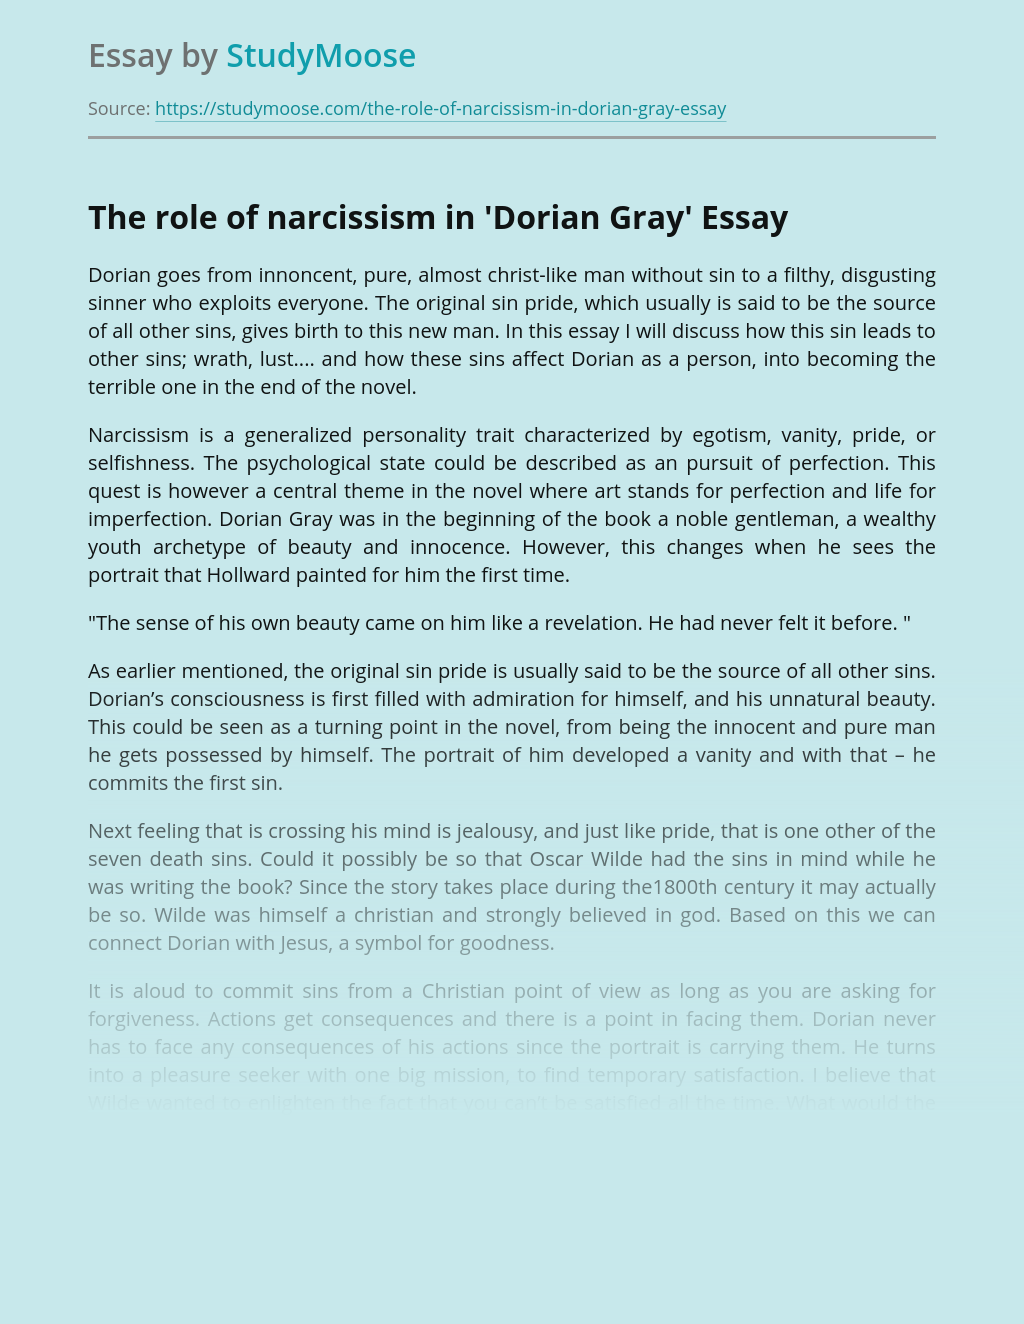 The Role of Narcissism in 'Dorian Gray'